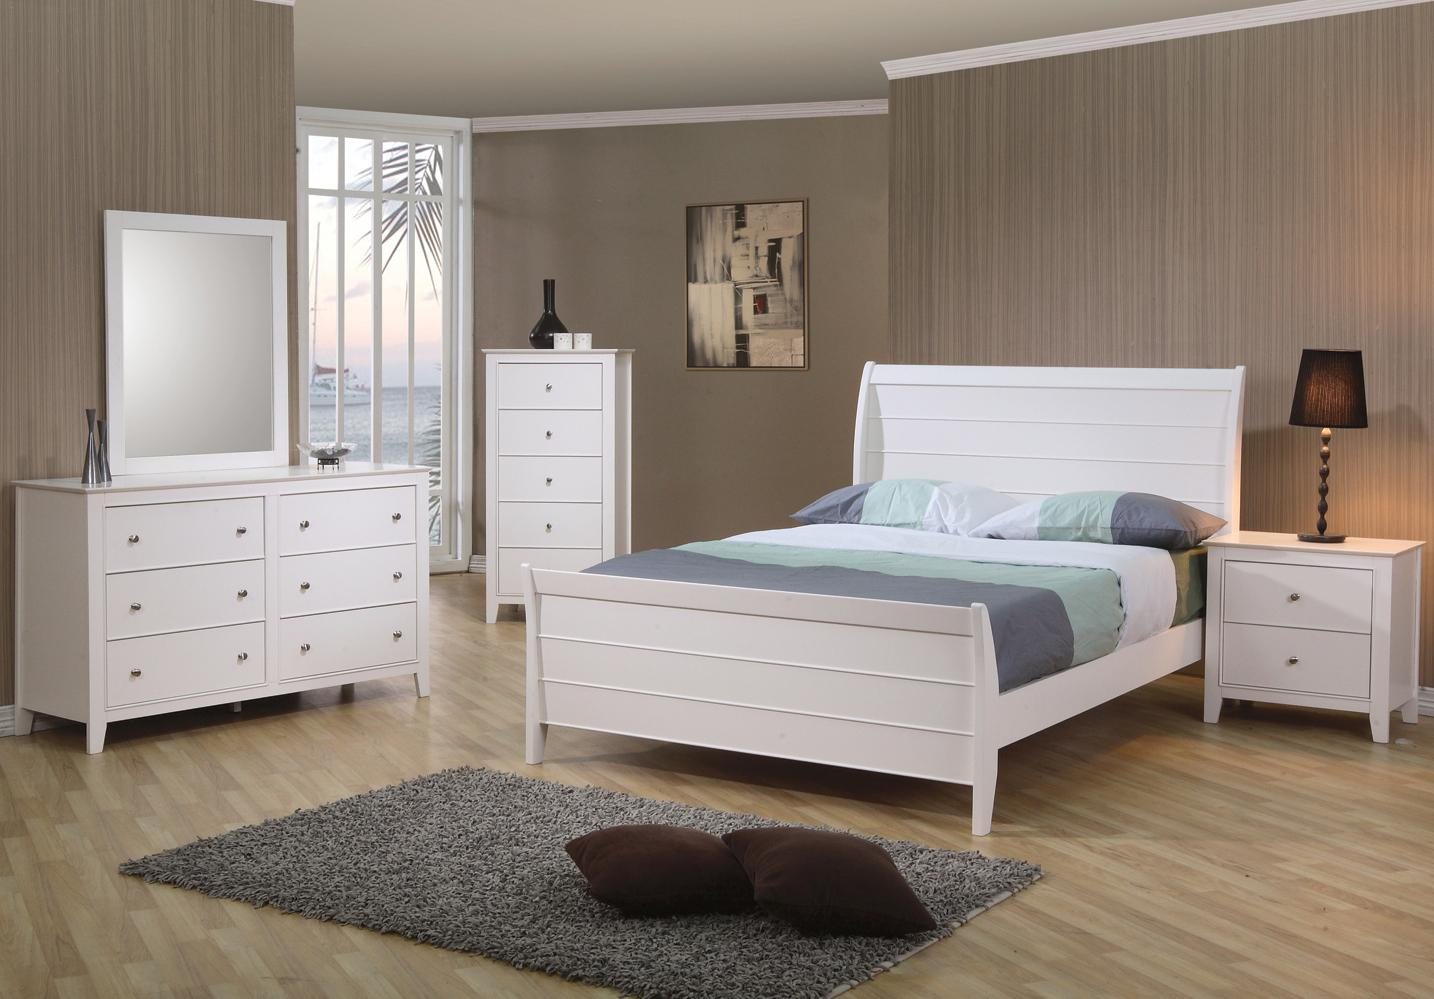 Coaster furniture selena bedroom set broadway furniture for White dresser set bedroom furniture